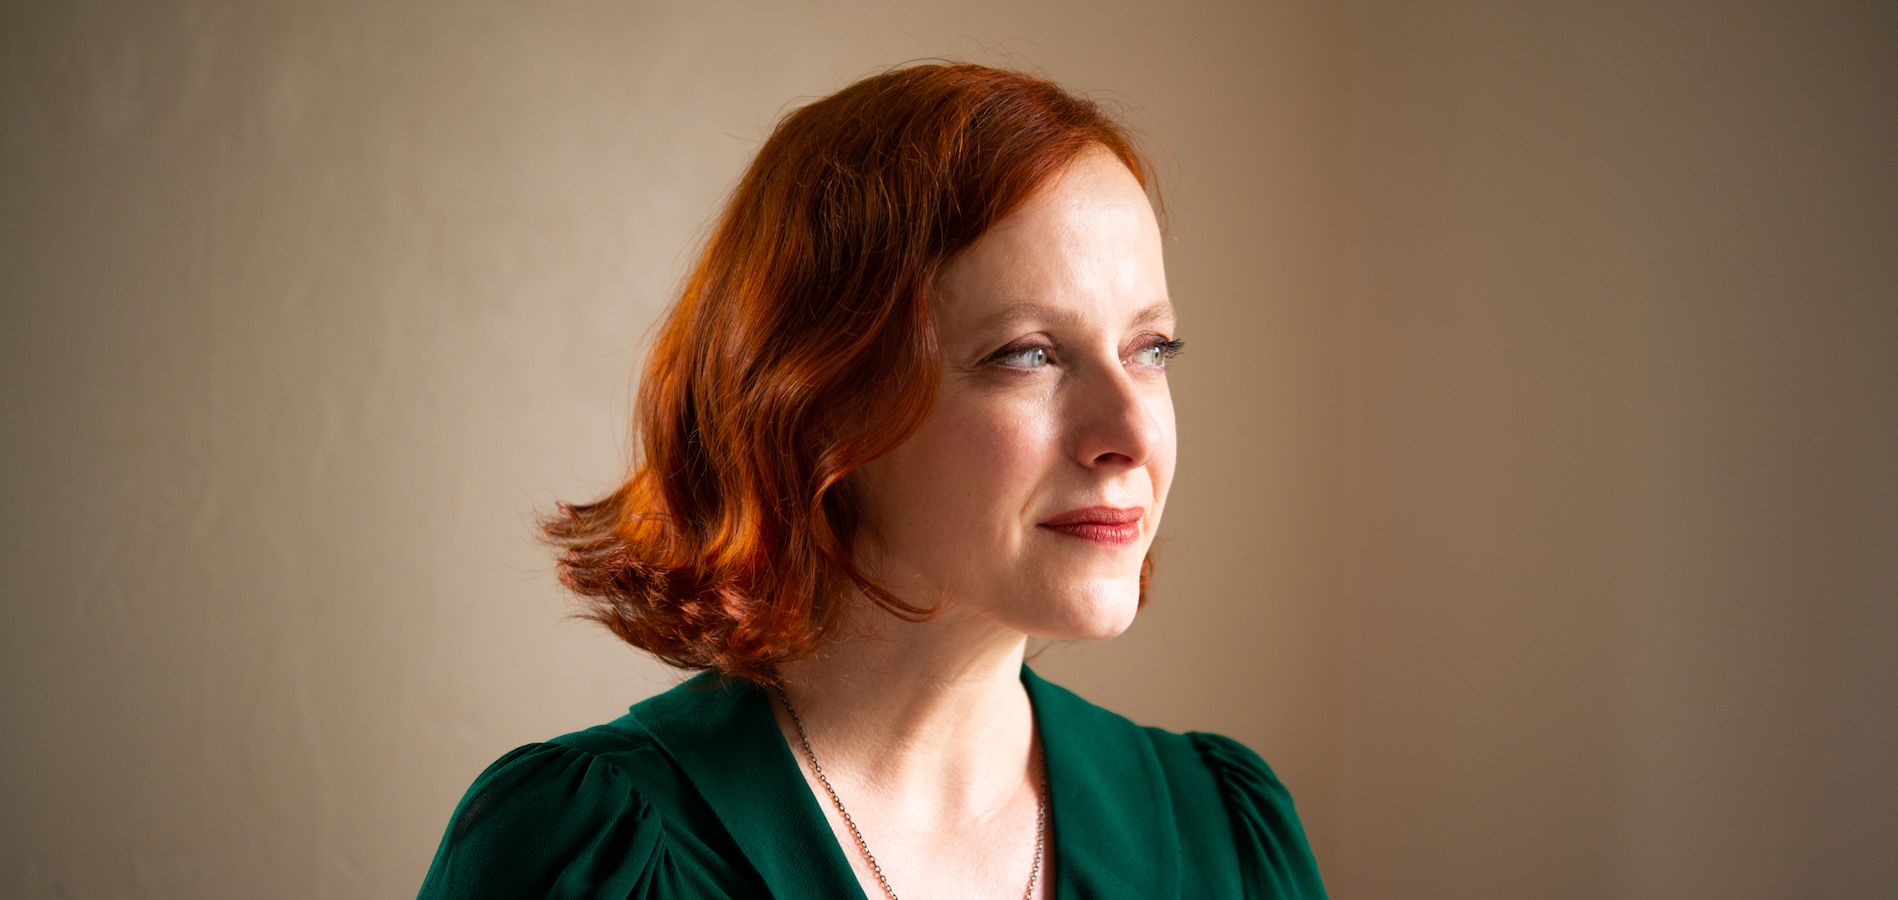 Headshot of redheaded woman set against beige backdrop